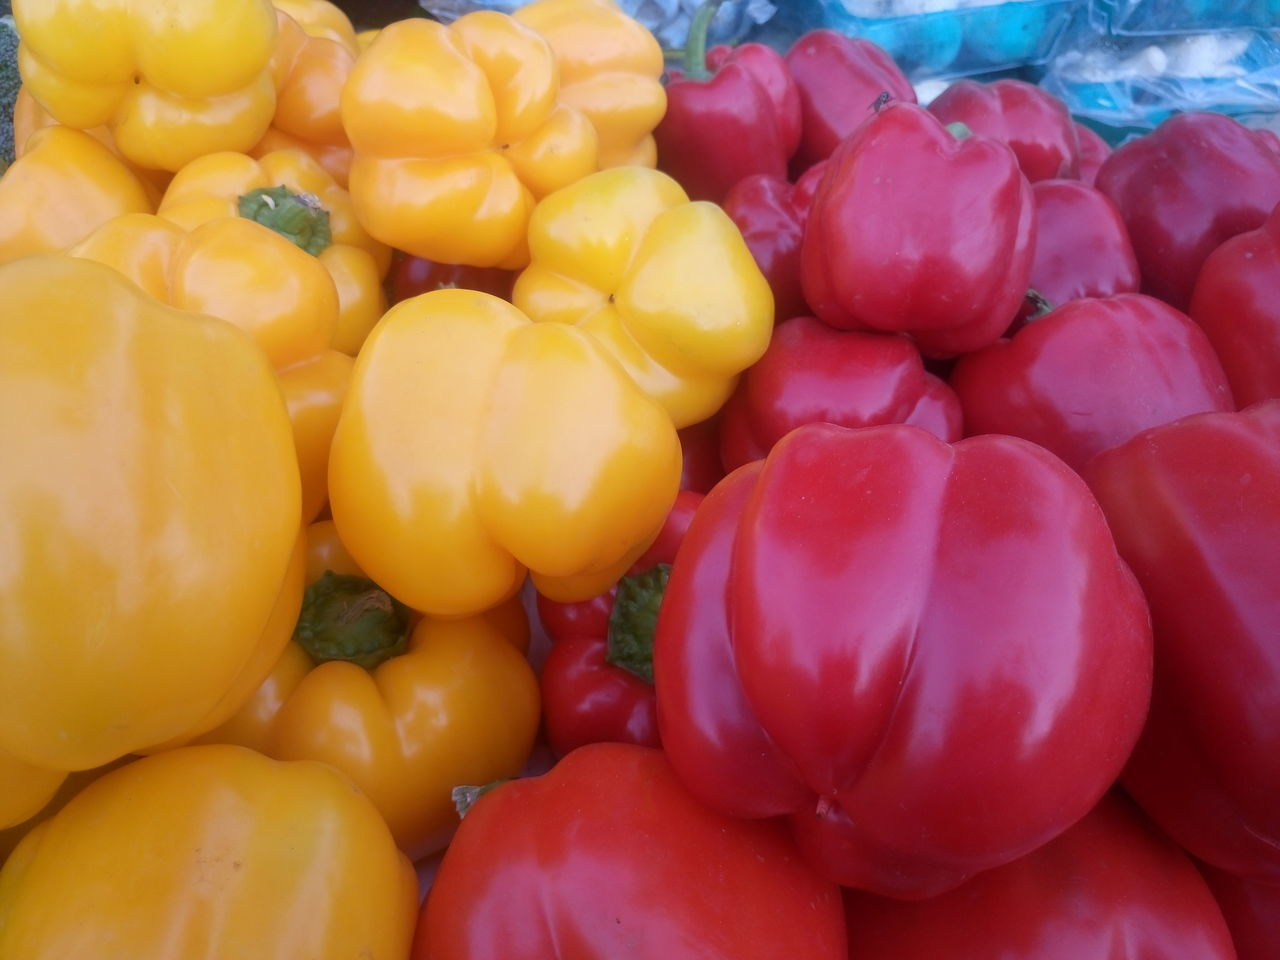 Abundance Backgrounds Bell Pepper Choice Close-up Day Food Food And Drink For Sale Freshness Full Frame Healthy Eating Large Group Of Objects Market Market Stall No People Outdoors Red Bell Pepper Retail  Vegetable Yellow Bell Pepper